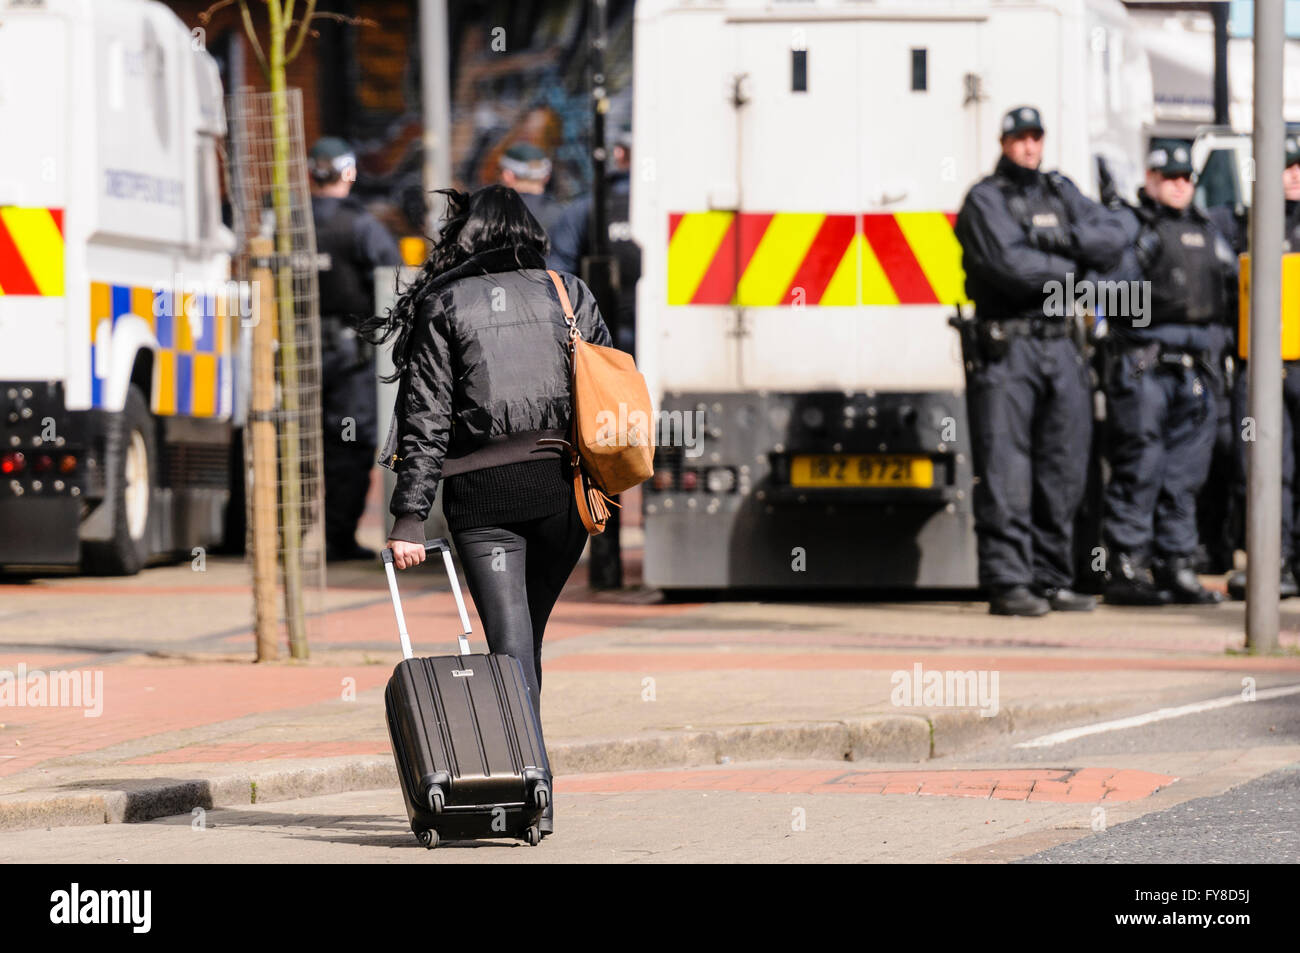 A woman wheels a suitcase towards a line of PSNI police officers in Belfast. - Stock Image